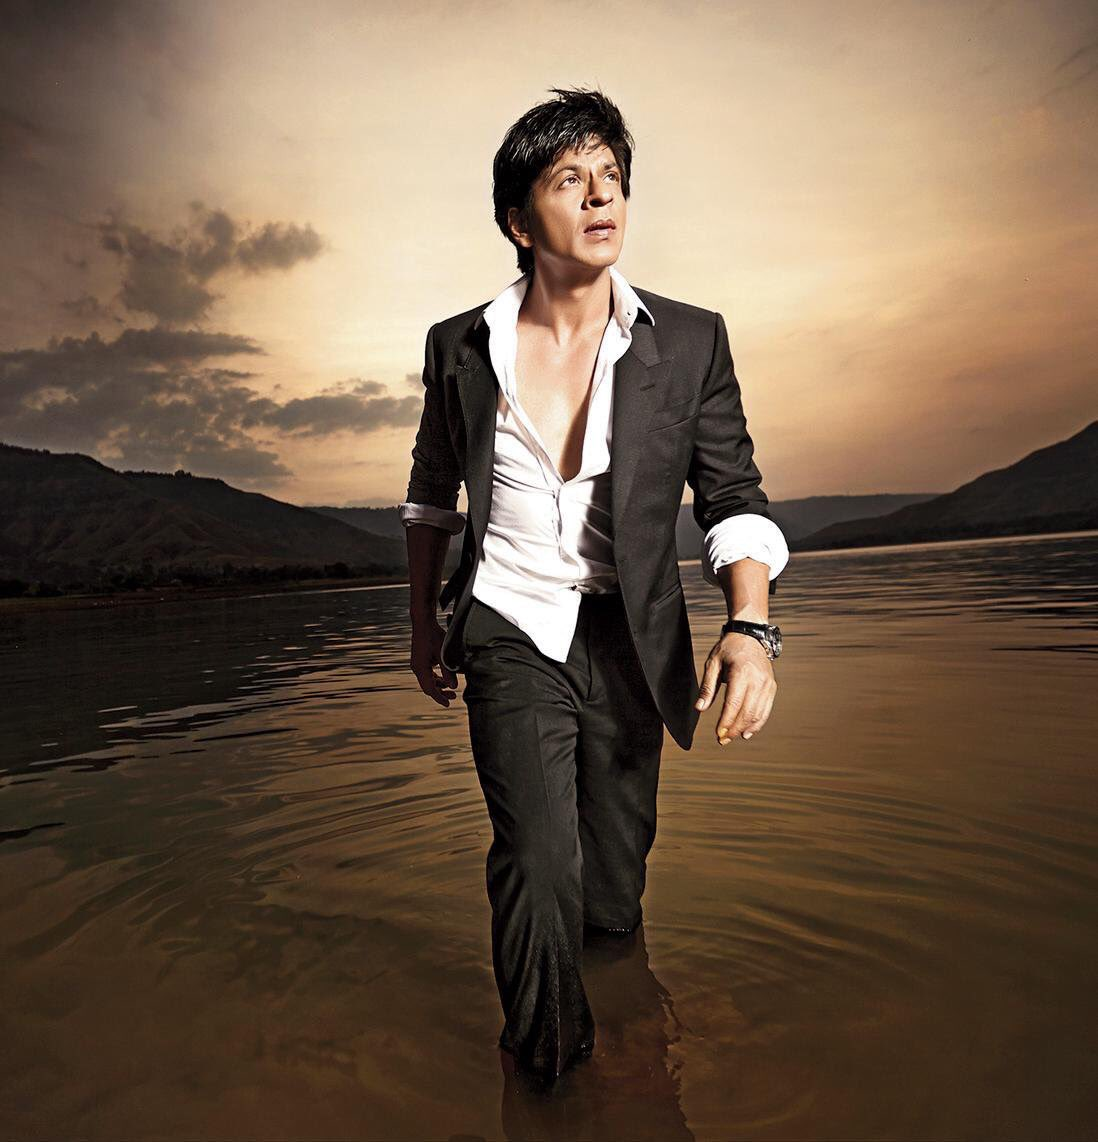 Shah Rukh Khan: 'To me nothing comes in the way of my art, whether it is stardom or failure.' #KingSays https://t.co/kvgplfUUI0